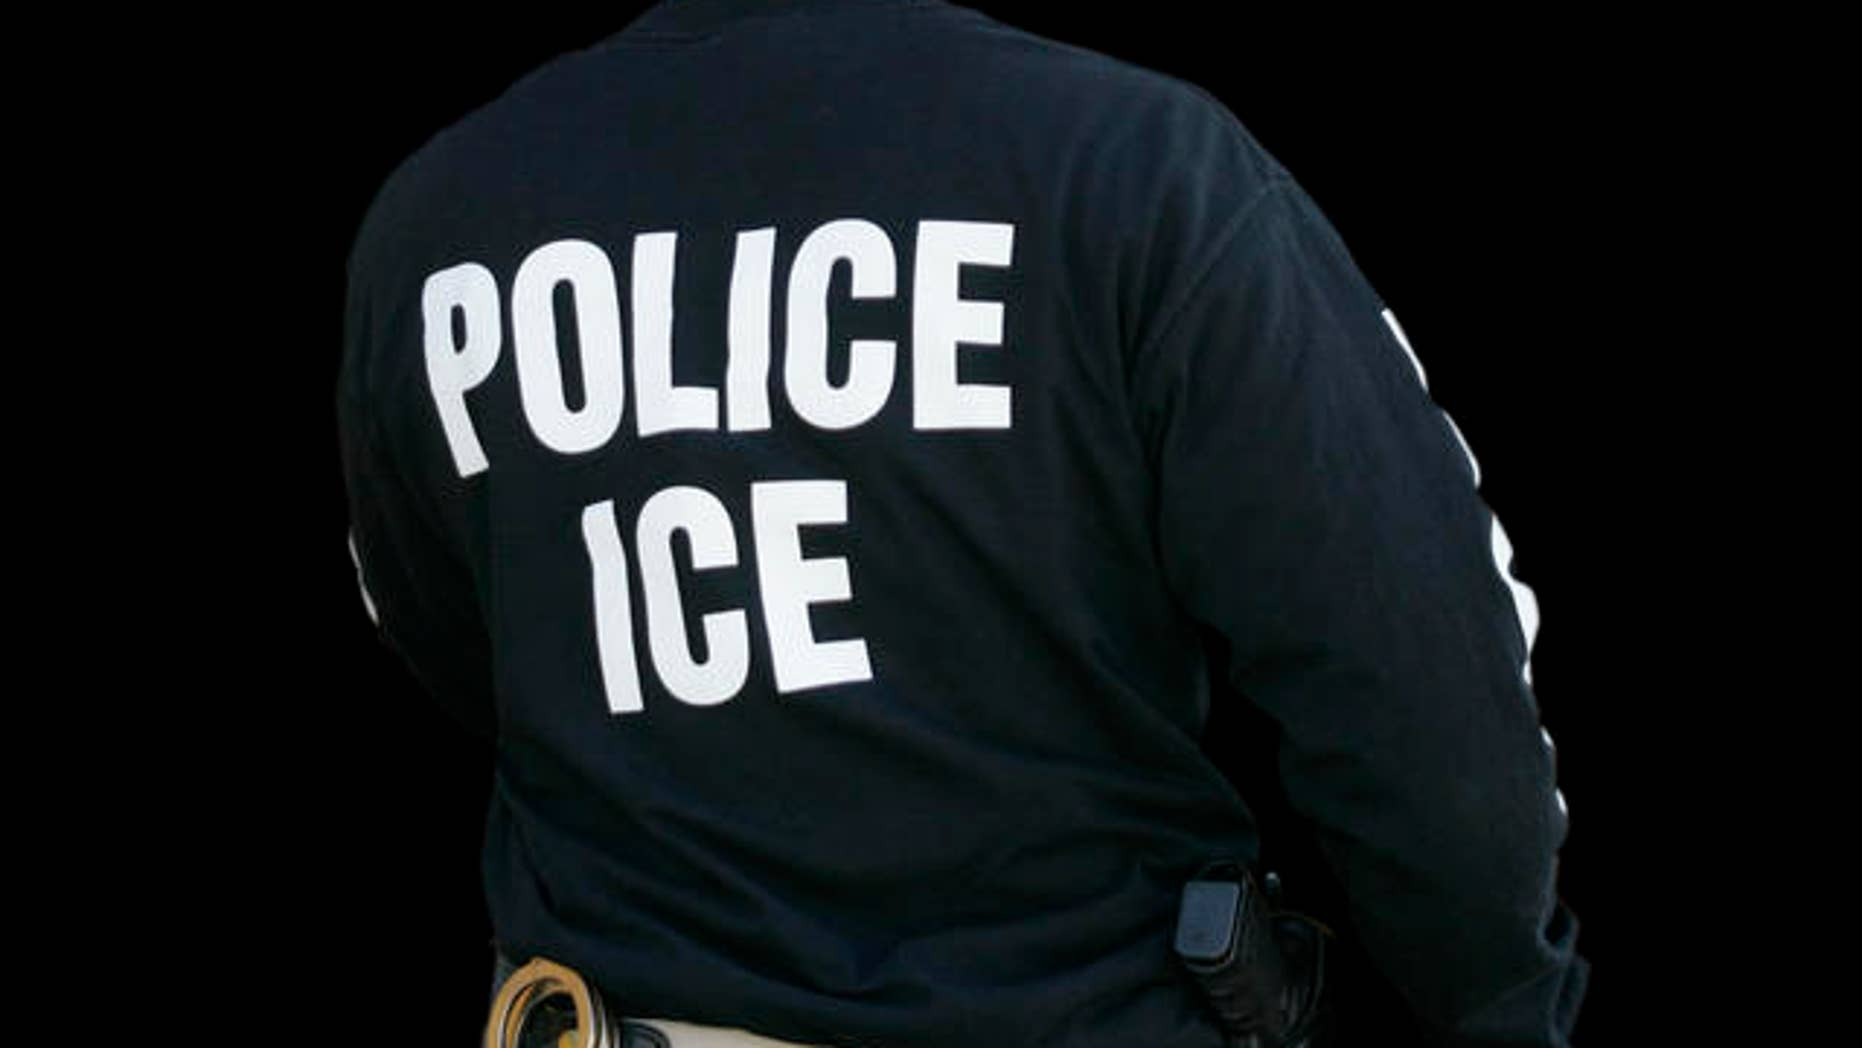 U.S. Immigration and Customs Enforcement (ICE) would never knowingly detain someone known to be a U.S. citizen, the agency says.